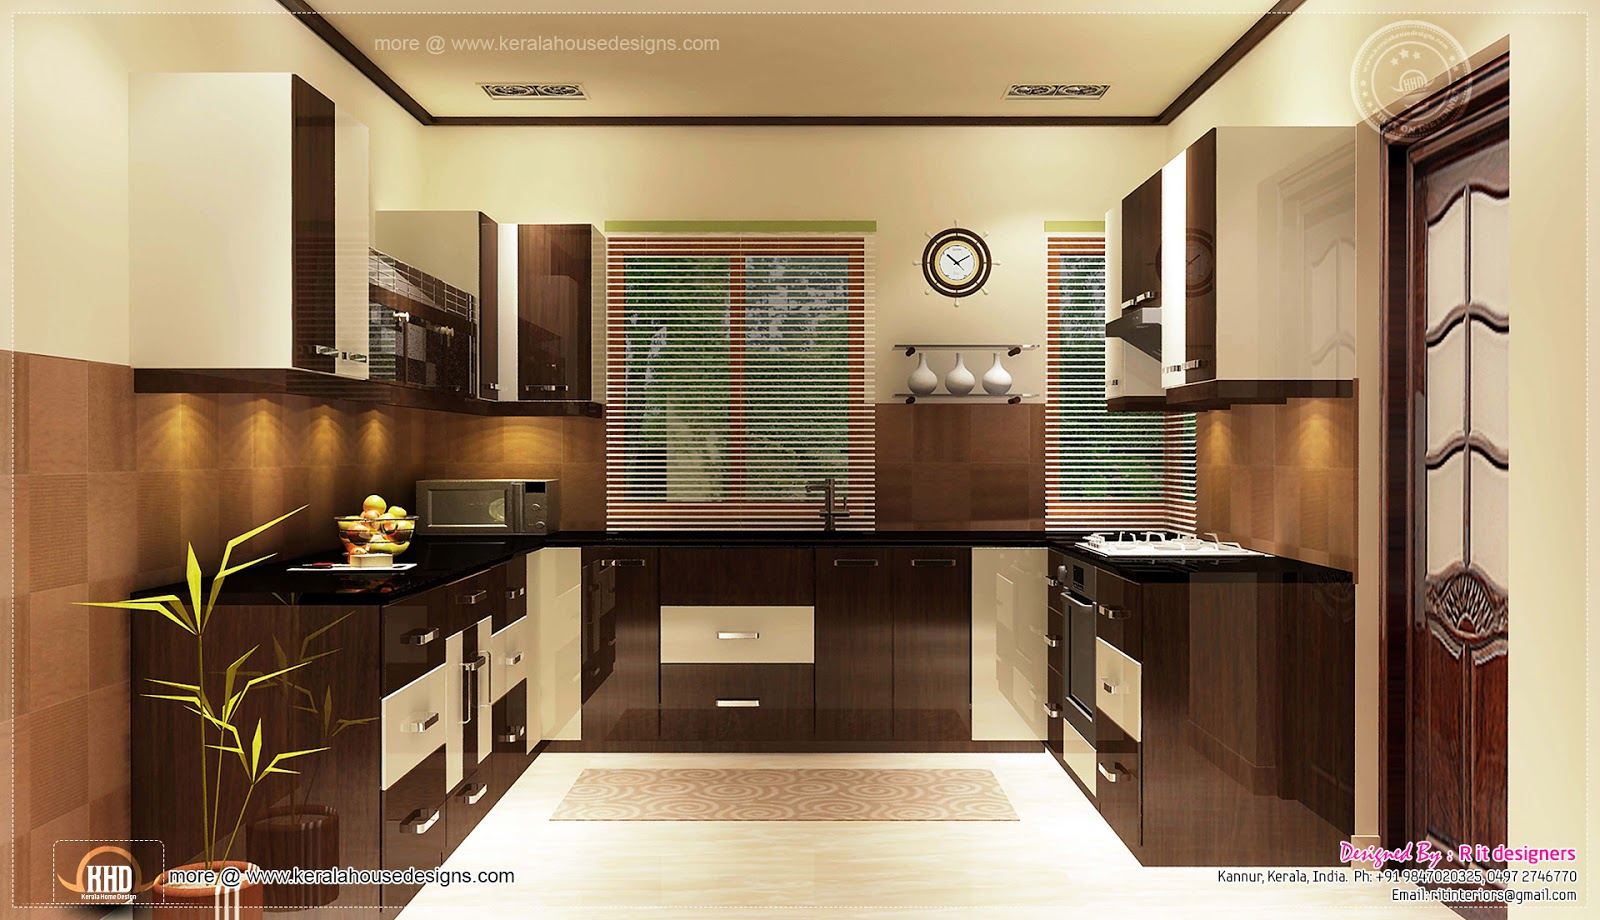 Home interior designs by rit designers kerala home for Interior designs for houses